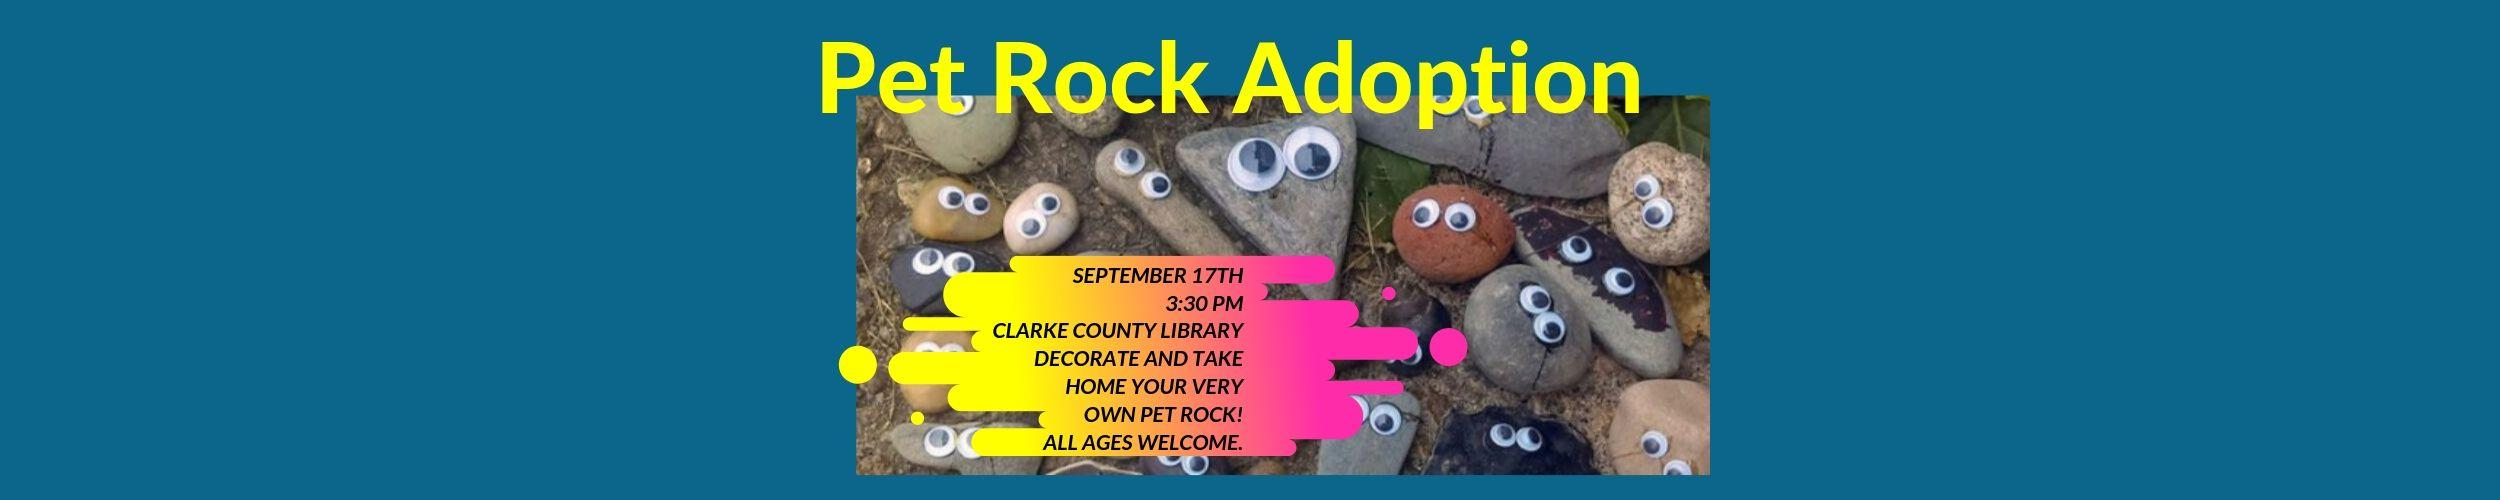 Pet Rock Adoption